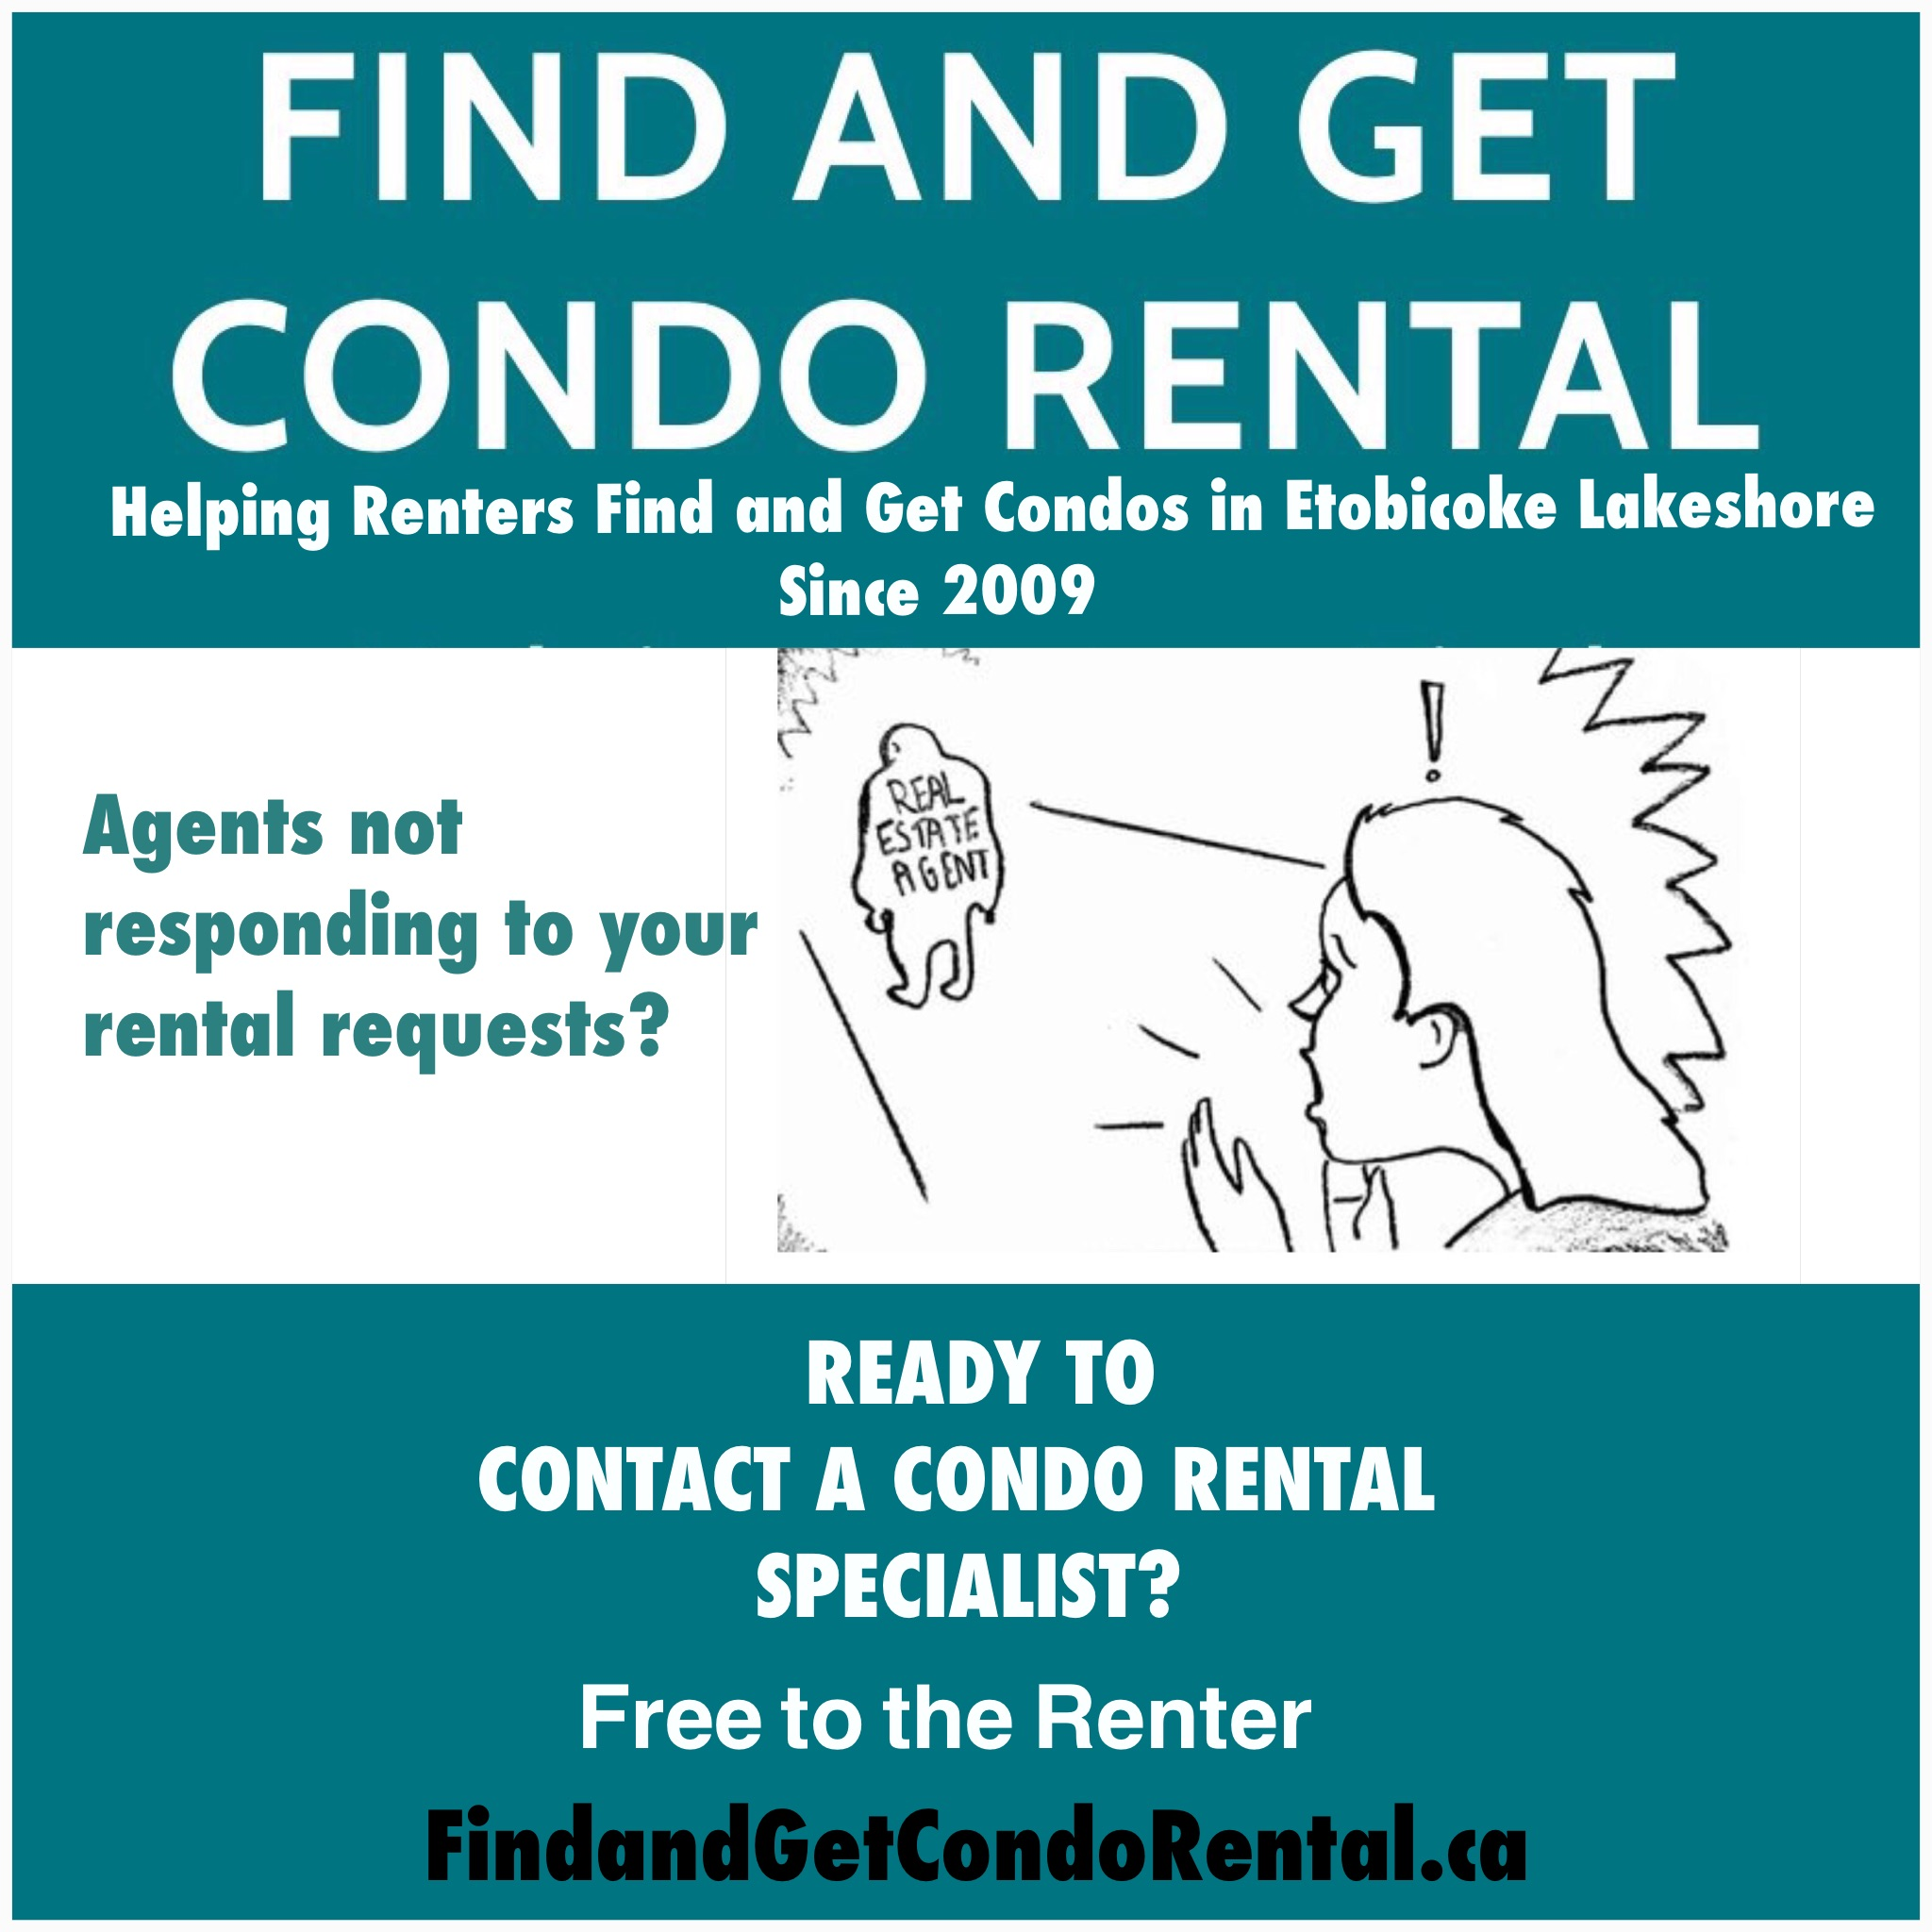 Find and Get Condo Rental